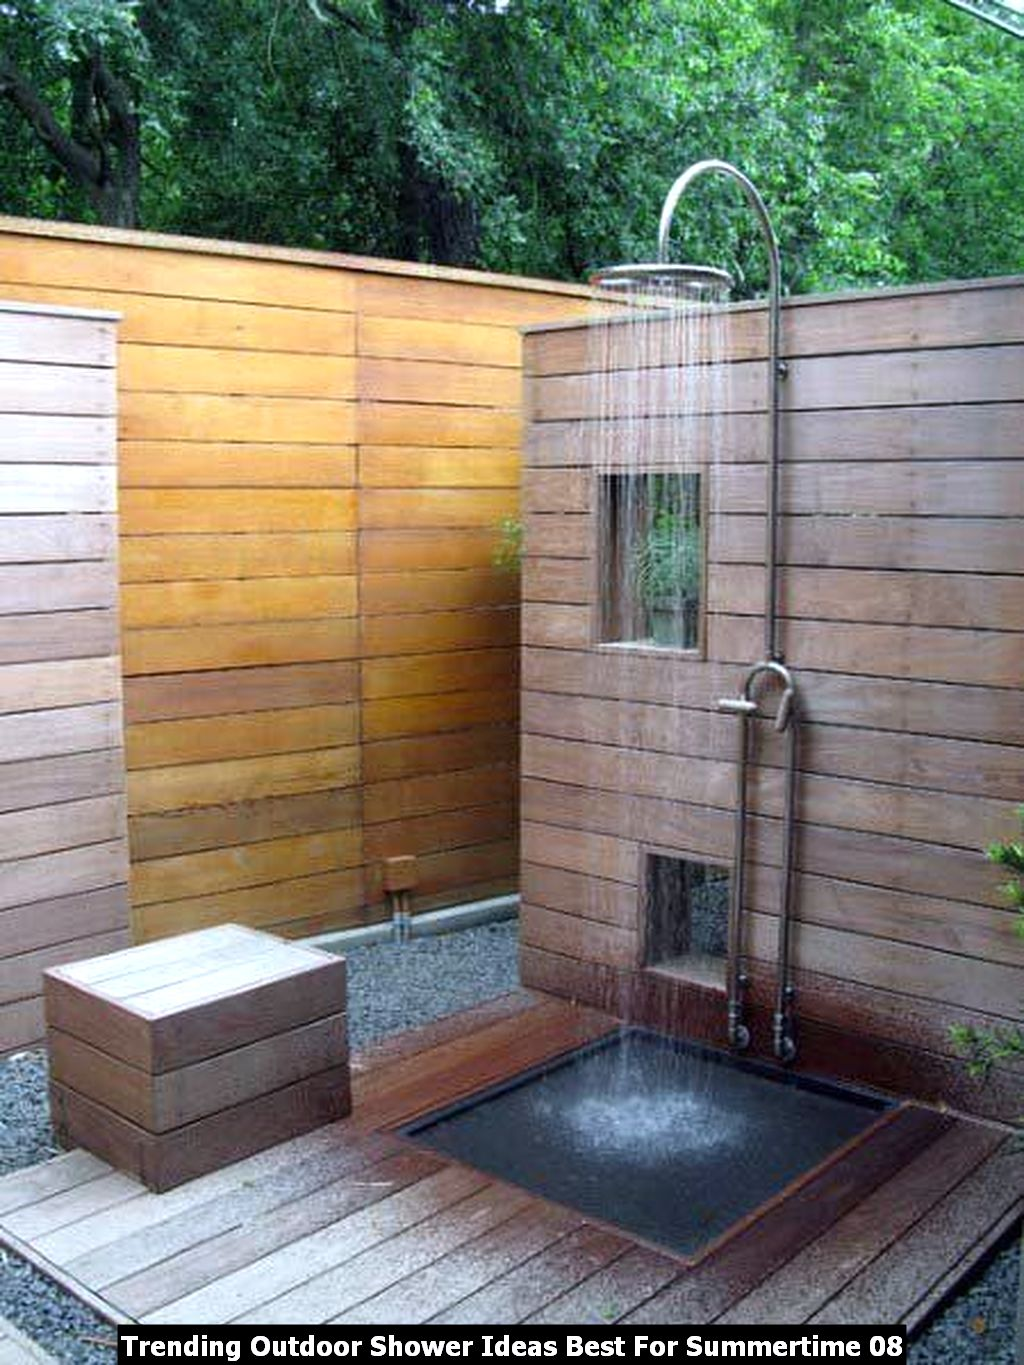 Trending Outdoor Shower Ideas Best For Summertime 08